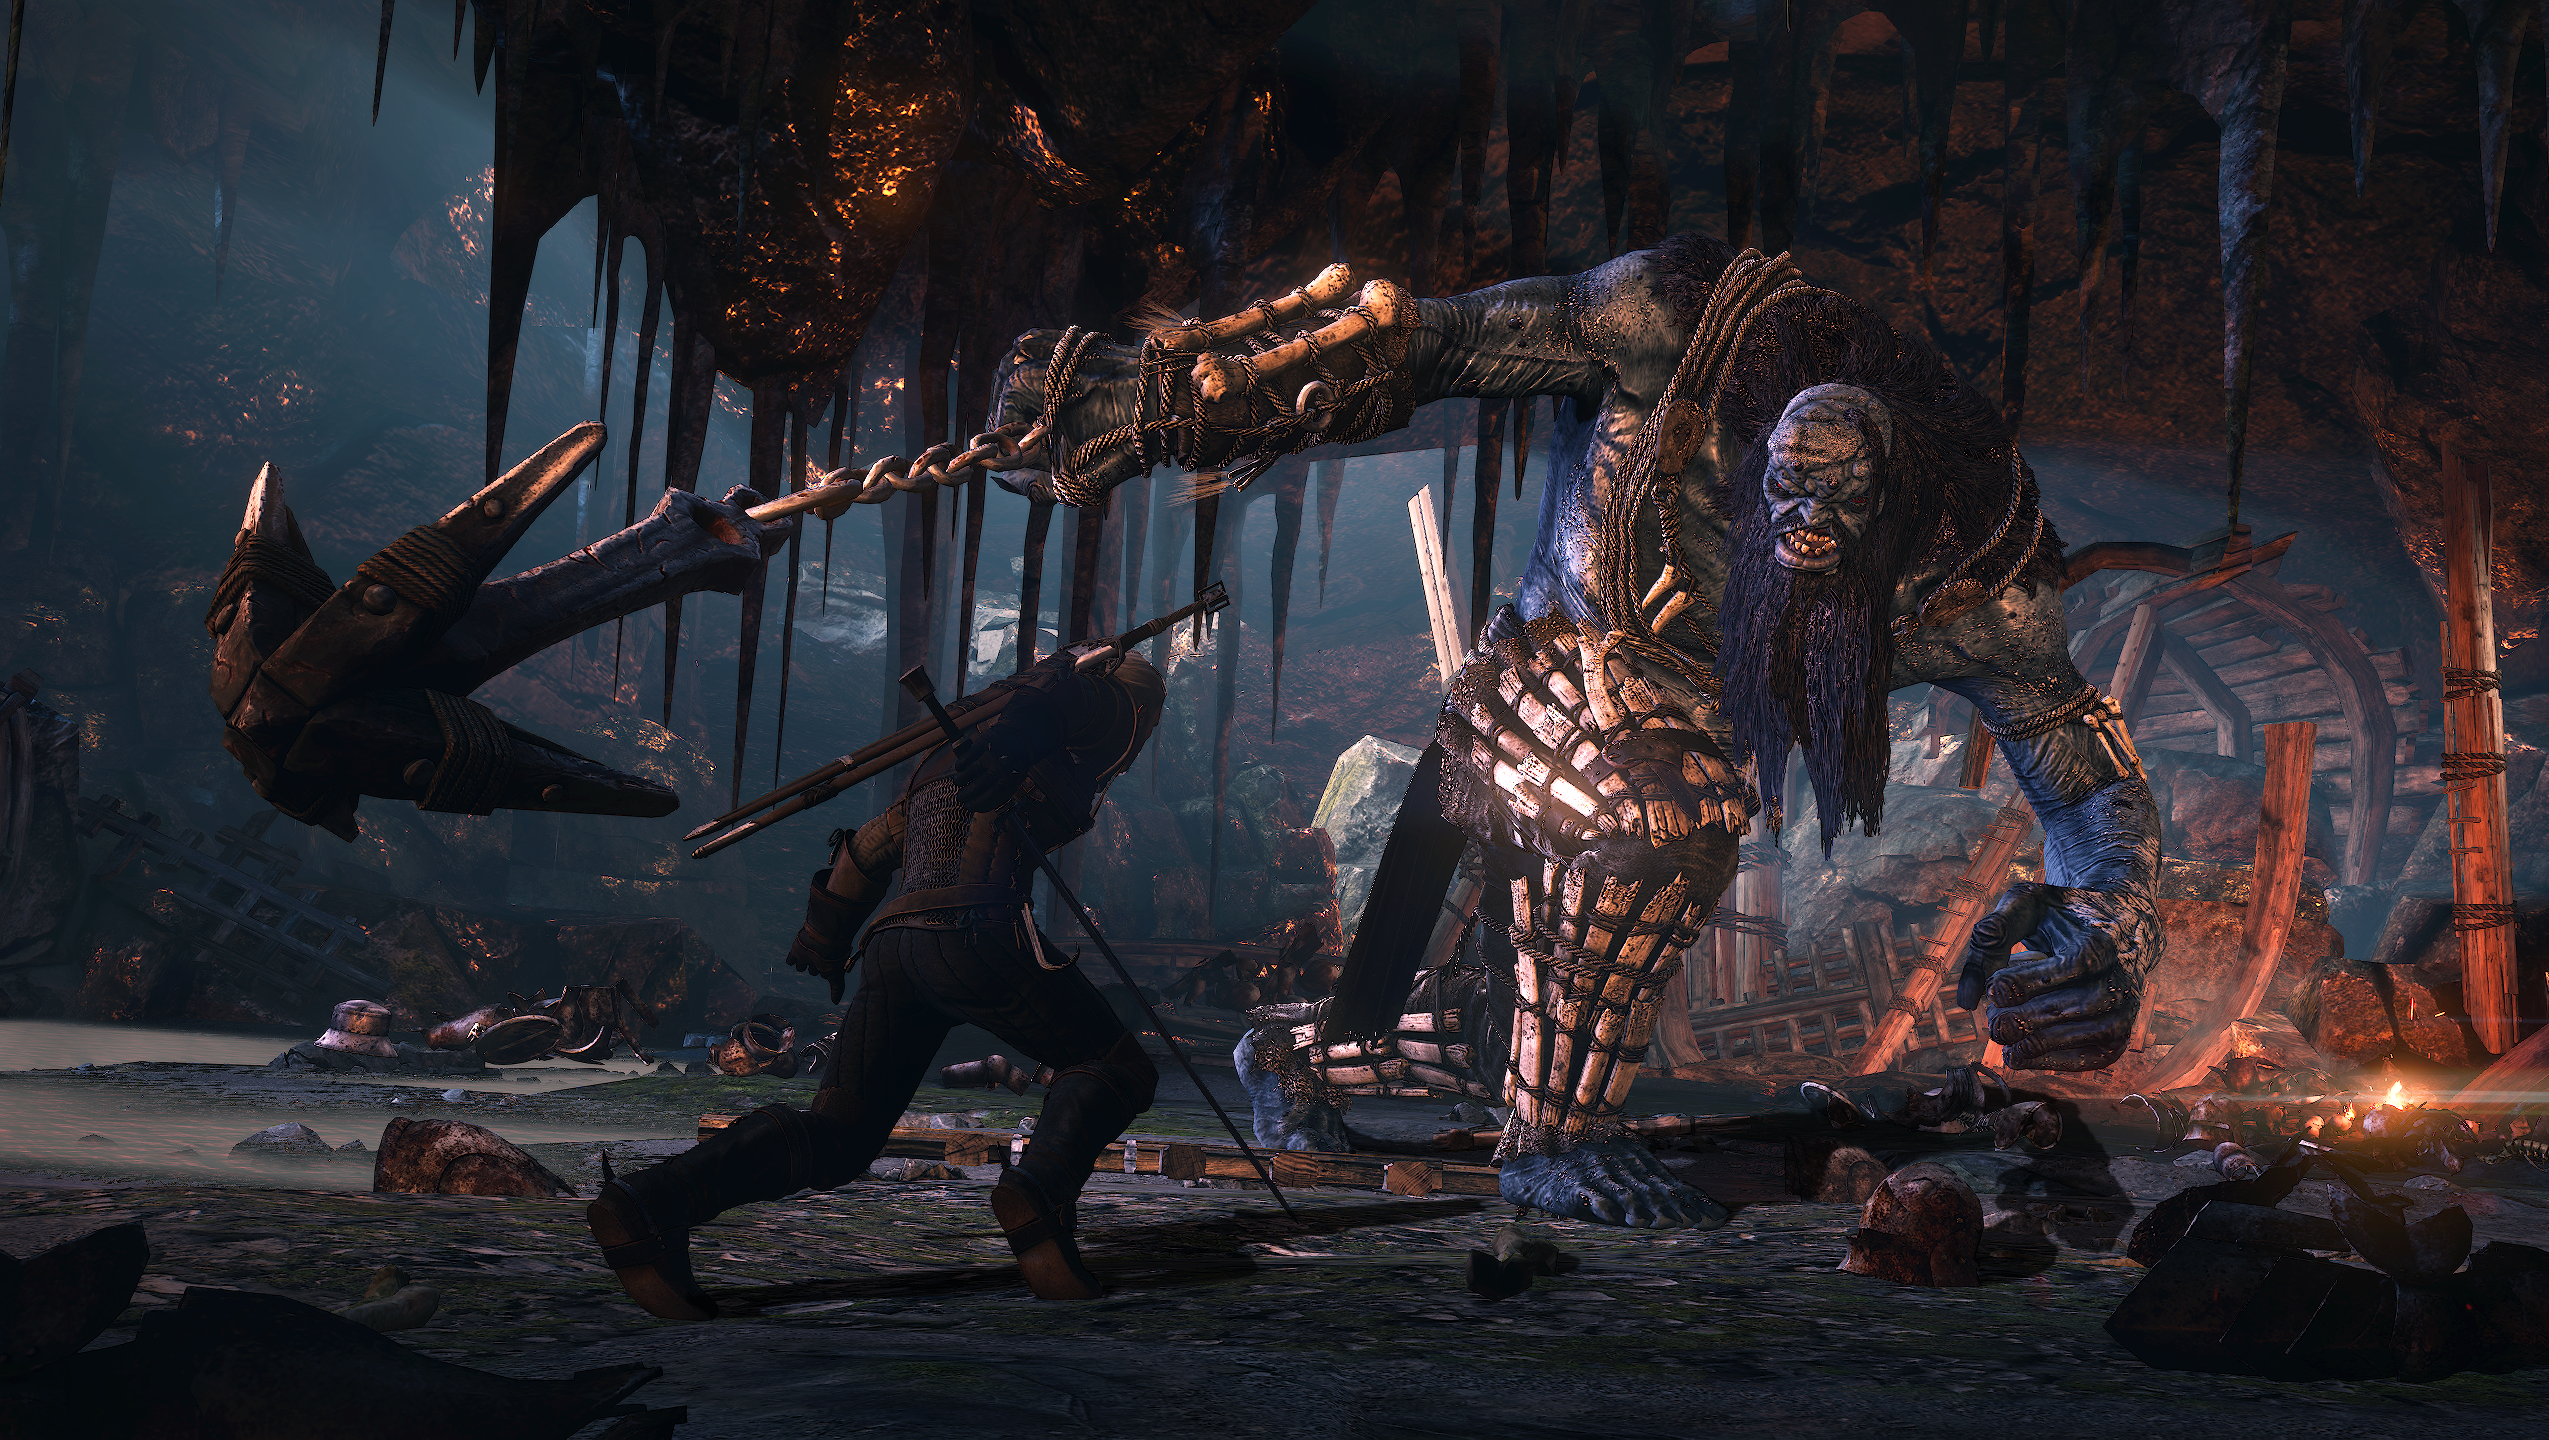 Free Download The Witcher 3 Neue Screenshots Verffentlicht Giga